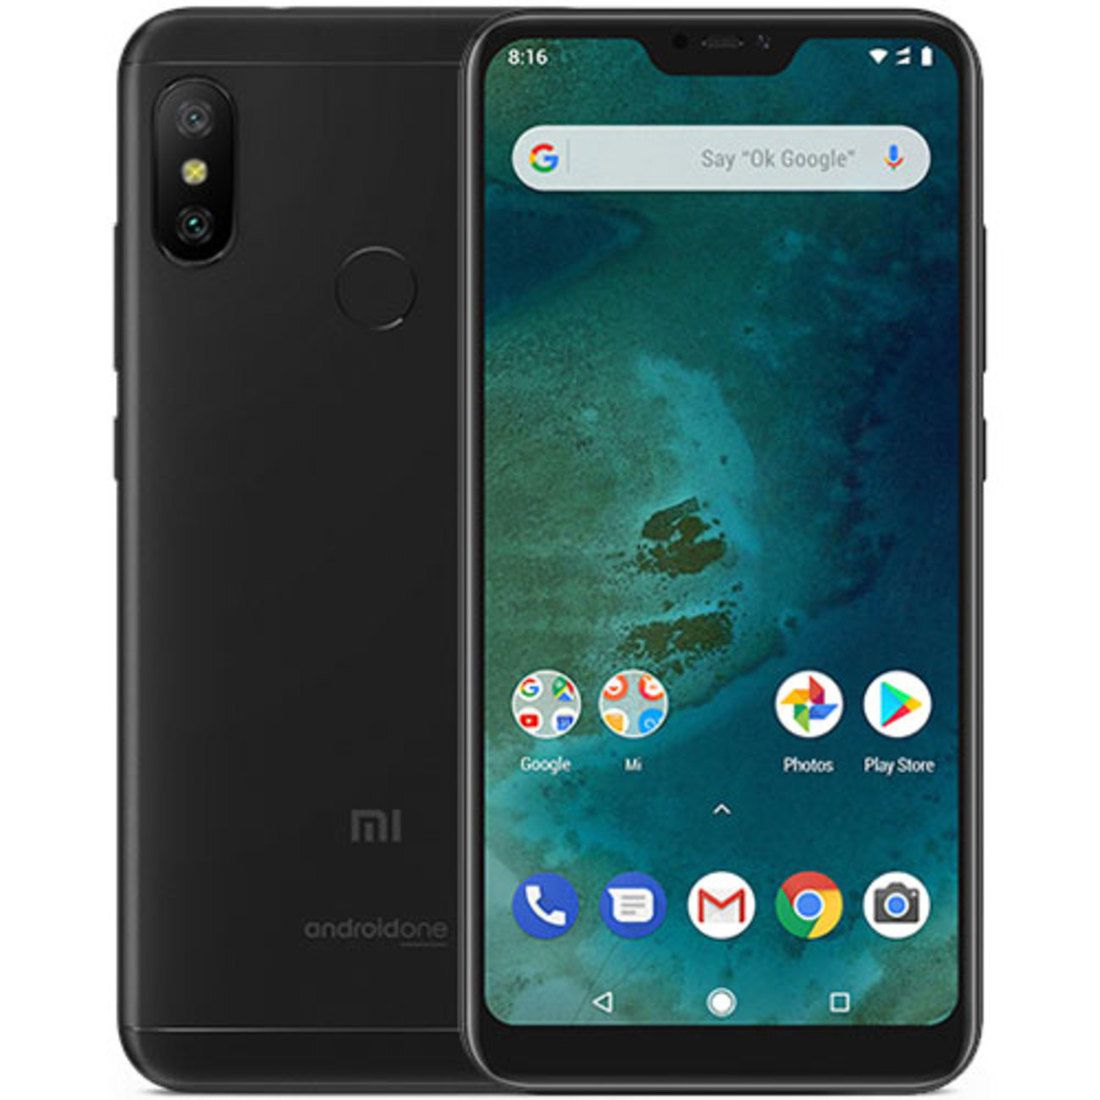 Smartphone Mi A2 Lite 4GB Ram Tela 5.84 64GB Camera Dupla 12+5MP - Preto